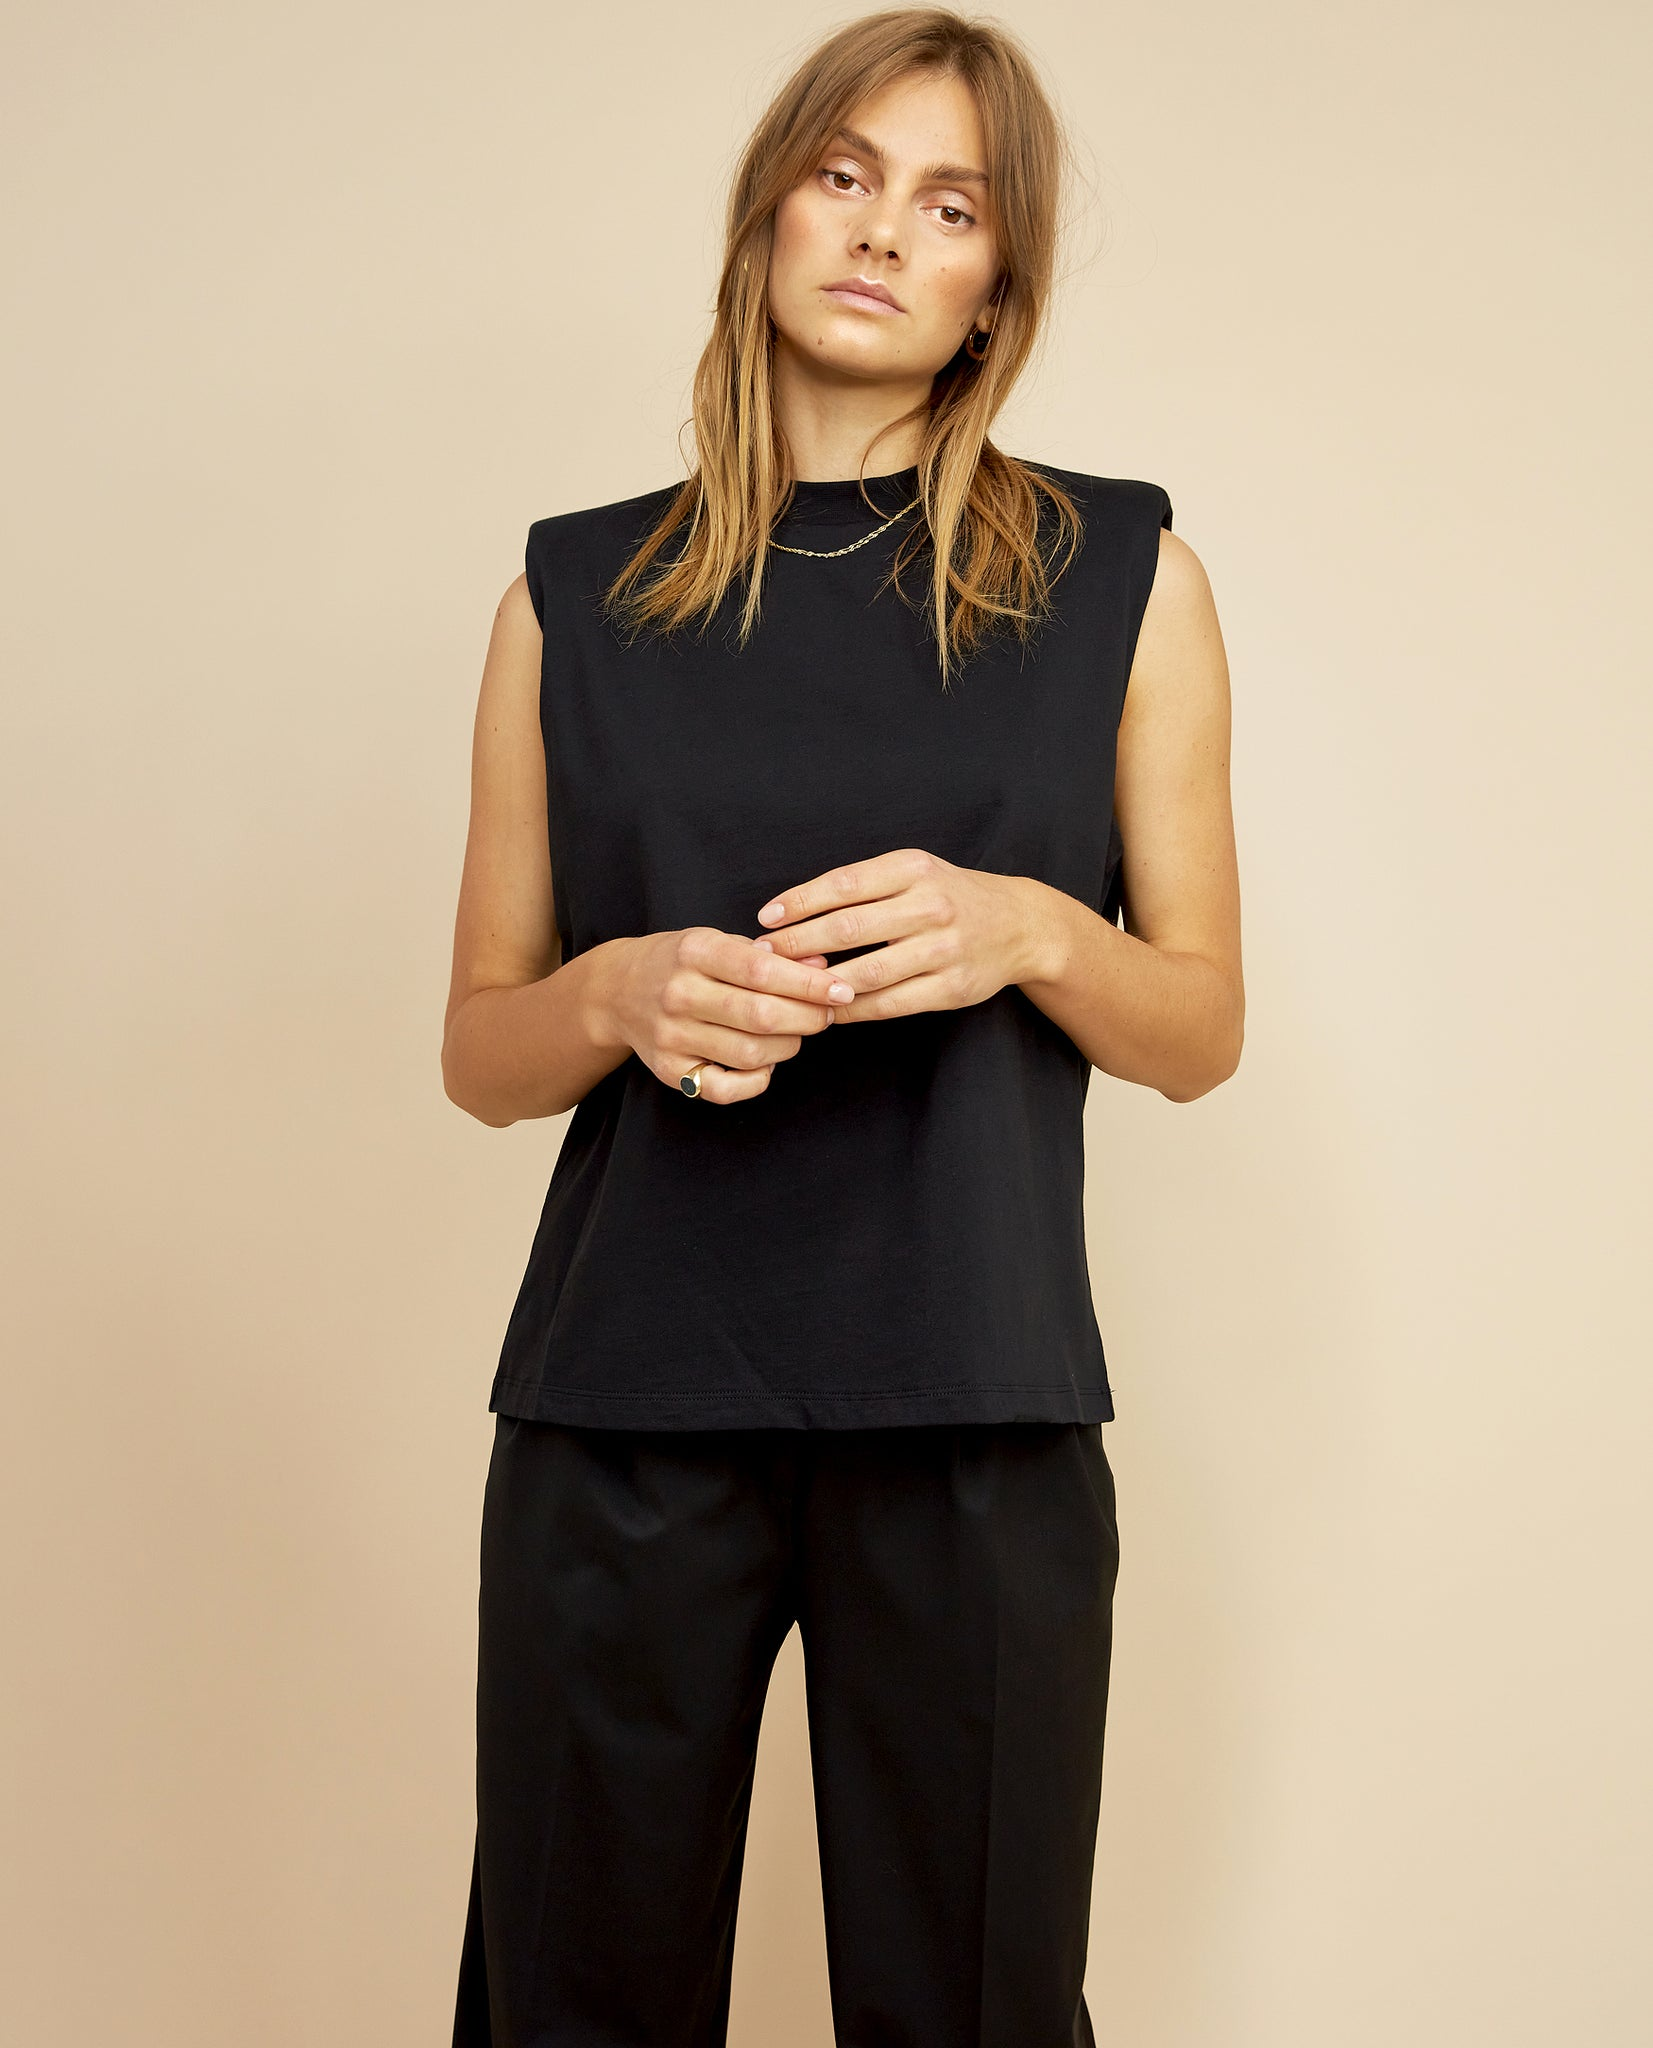 DEVON SLEEVELESS TOP BY LES COYOTES DE PARIS